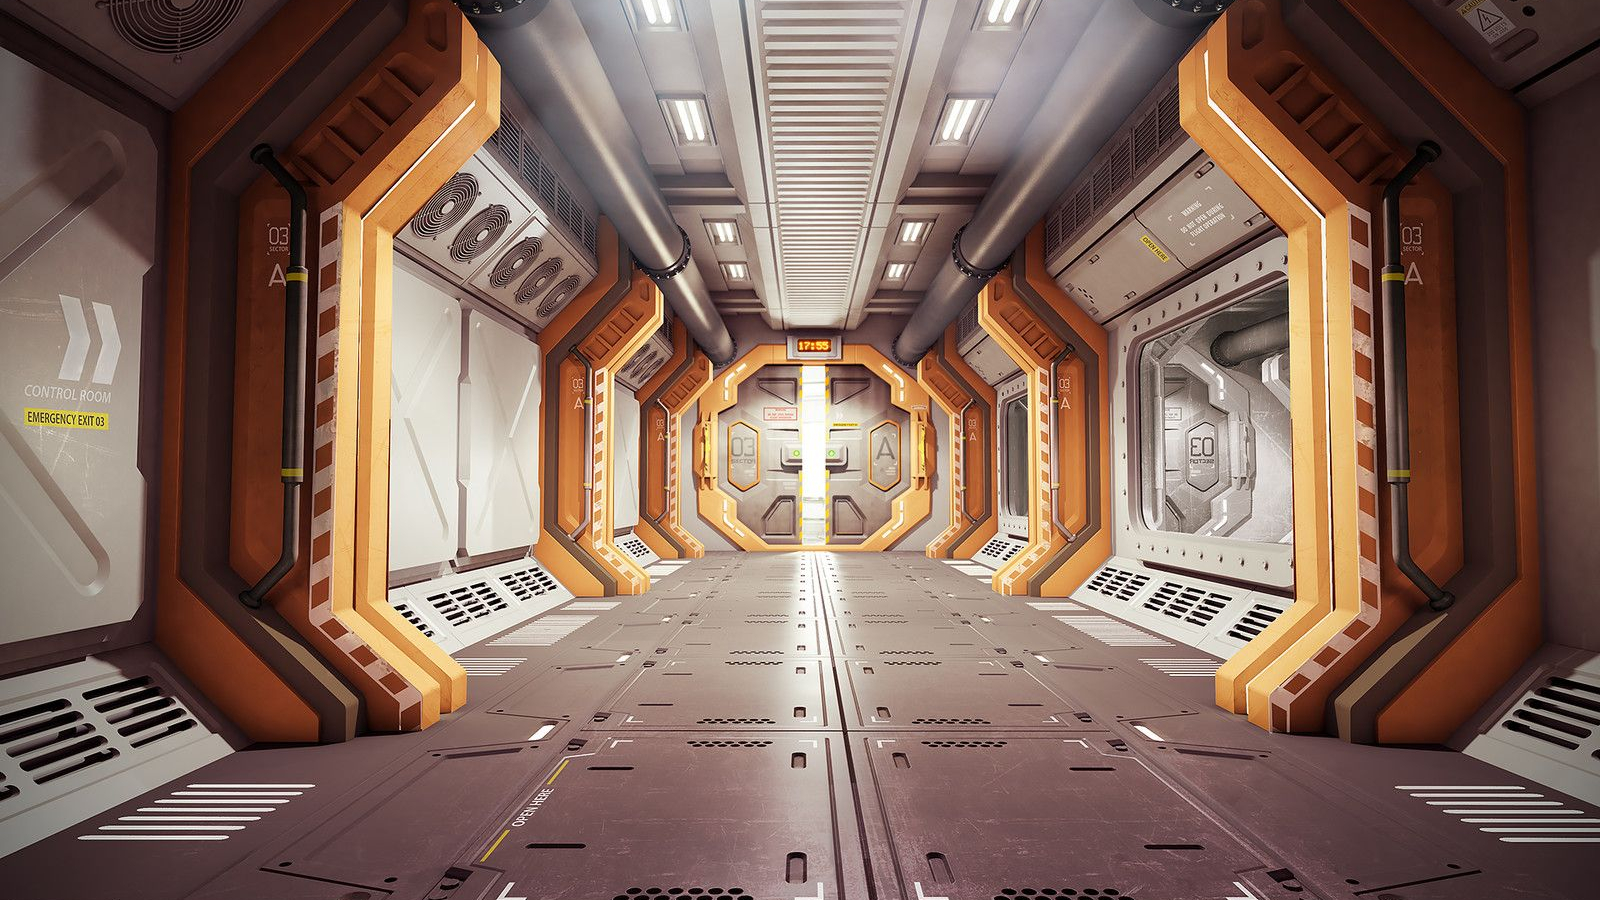 Free Download Pin By Turbolin On Sci Fi In 2019 Spaceship Interior